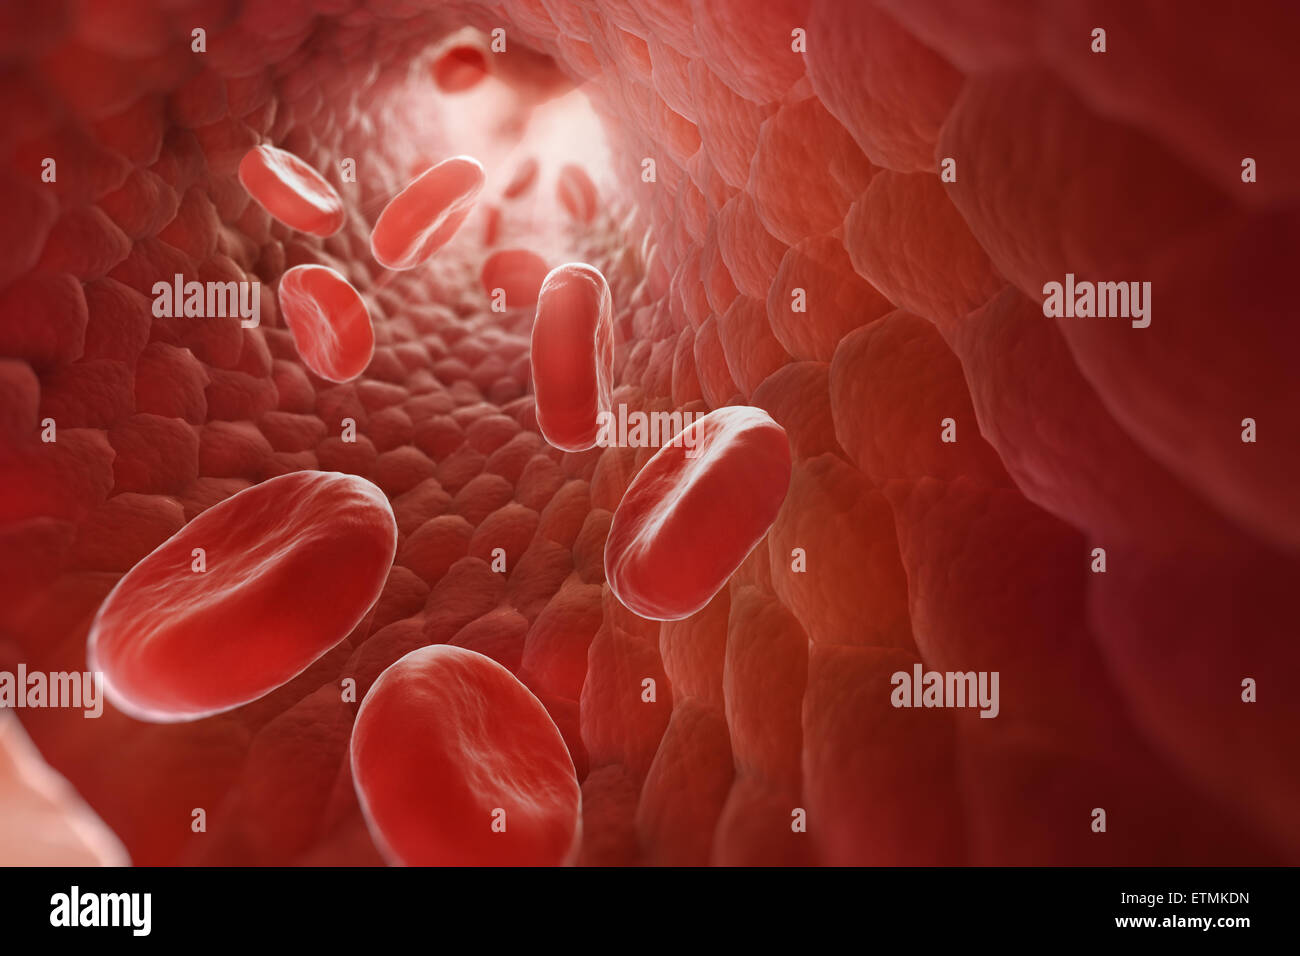 Stylized illustration showing red blood cells flowing through the blood stream. - Stock Image